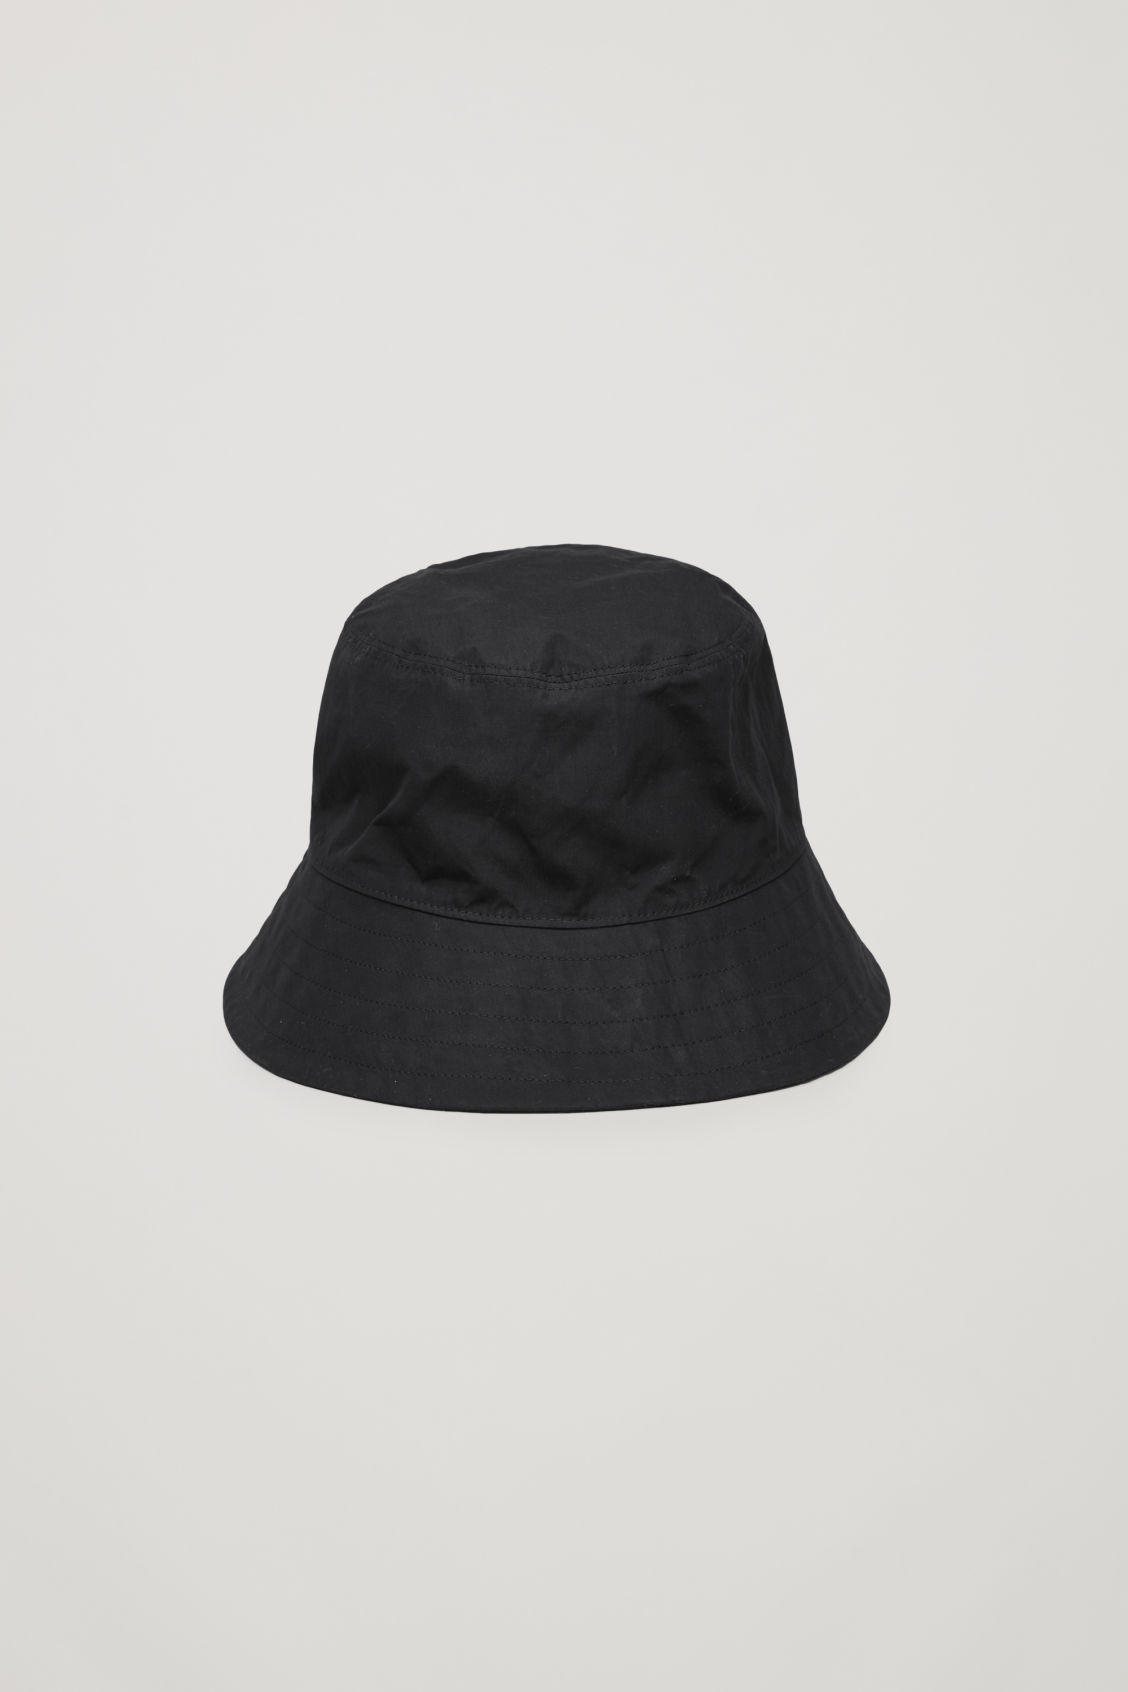 CANVAS BUCKET HAT - Black - Hats Scarves and Gloves - COS 5e6df17e3f08